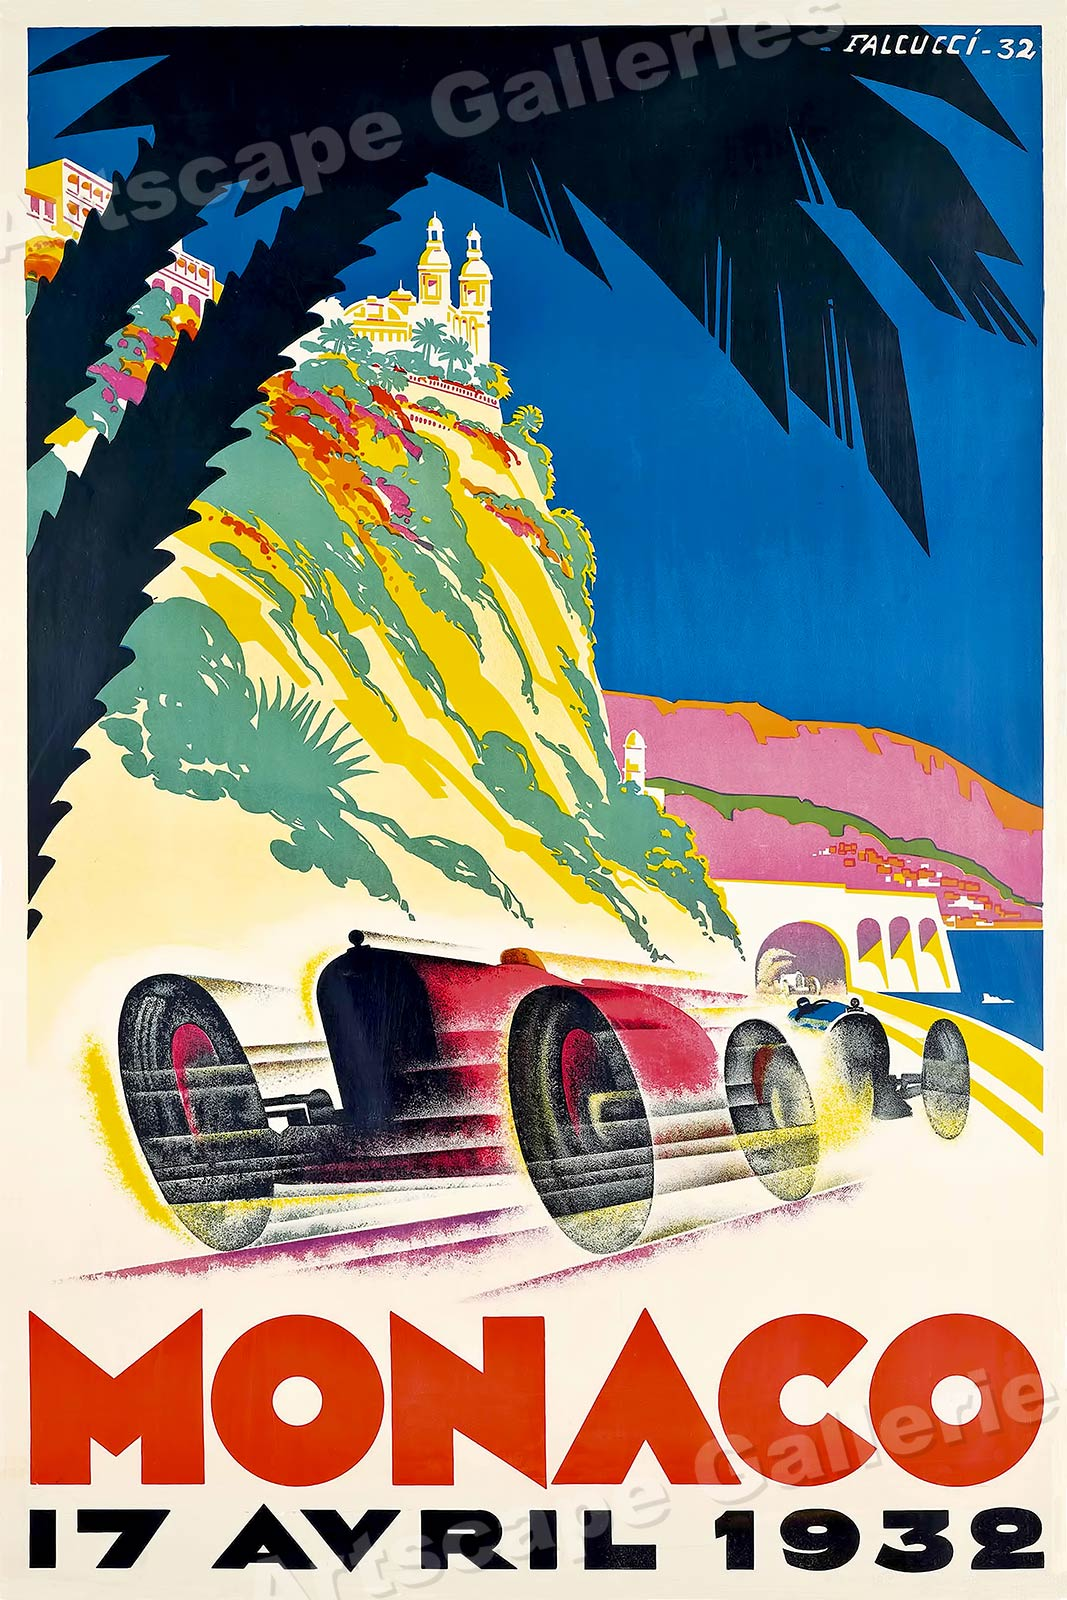 1937 Italian Grand Prix Road Race Vintage Style Auto Racing Poster 18x24